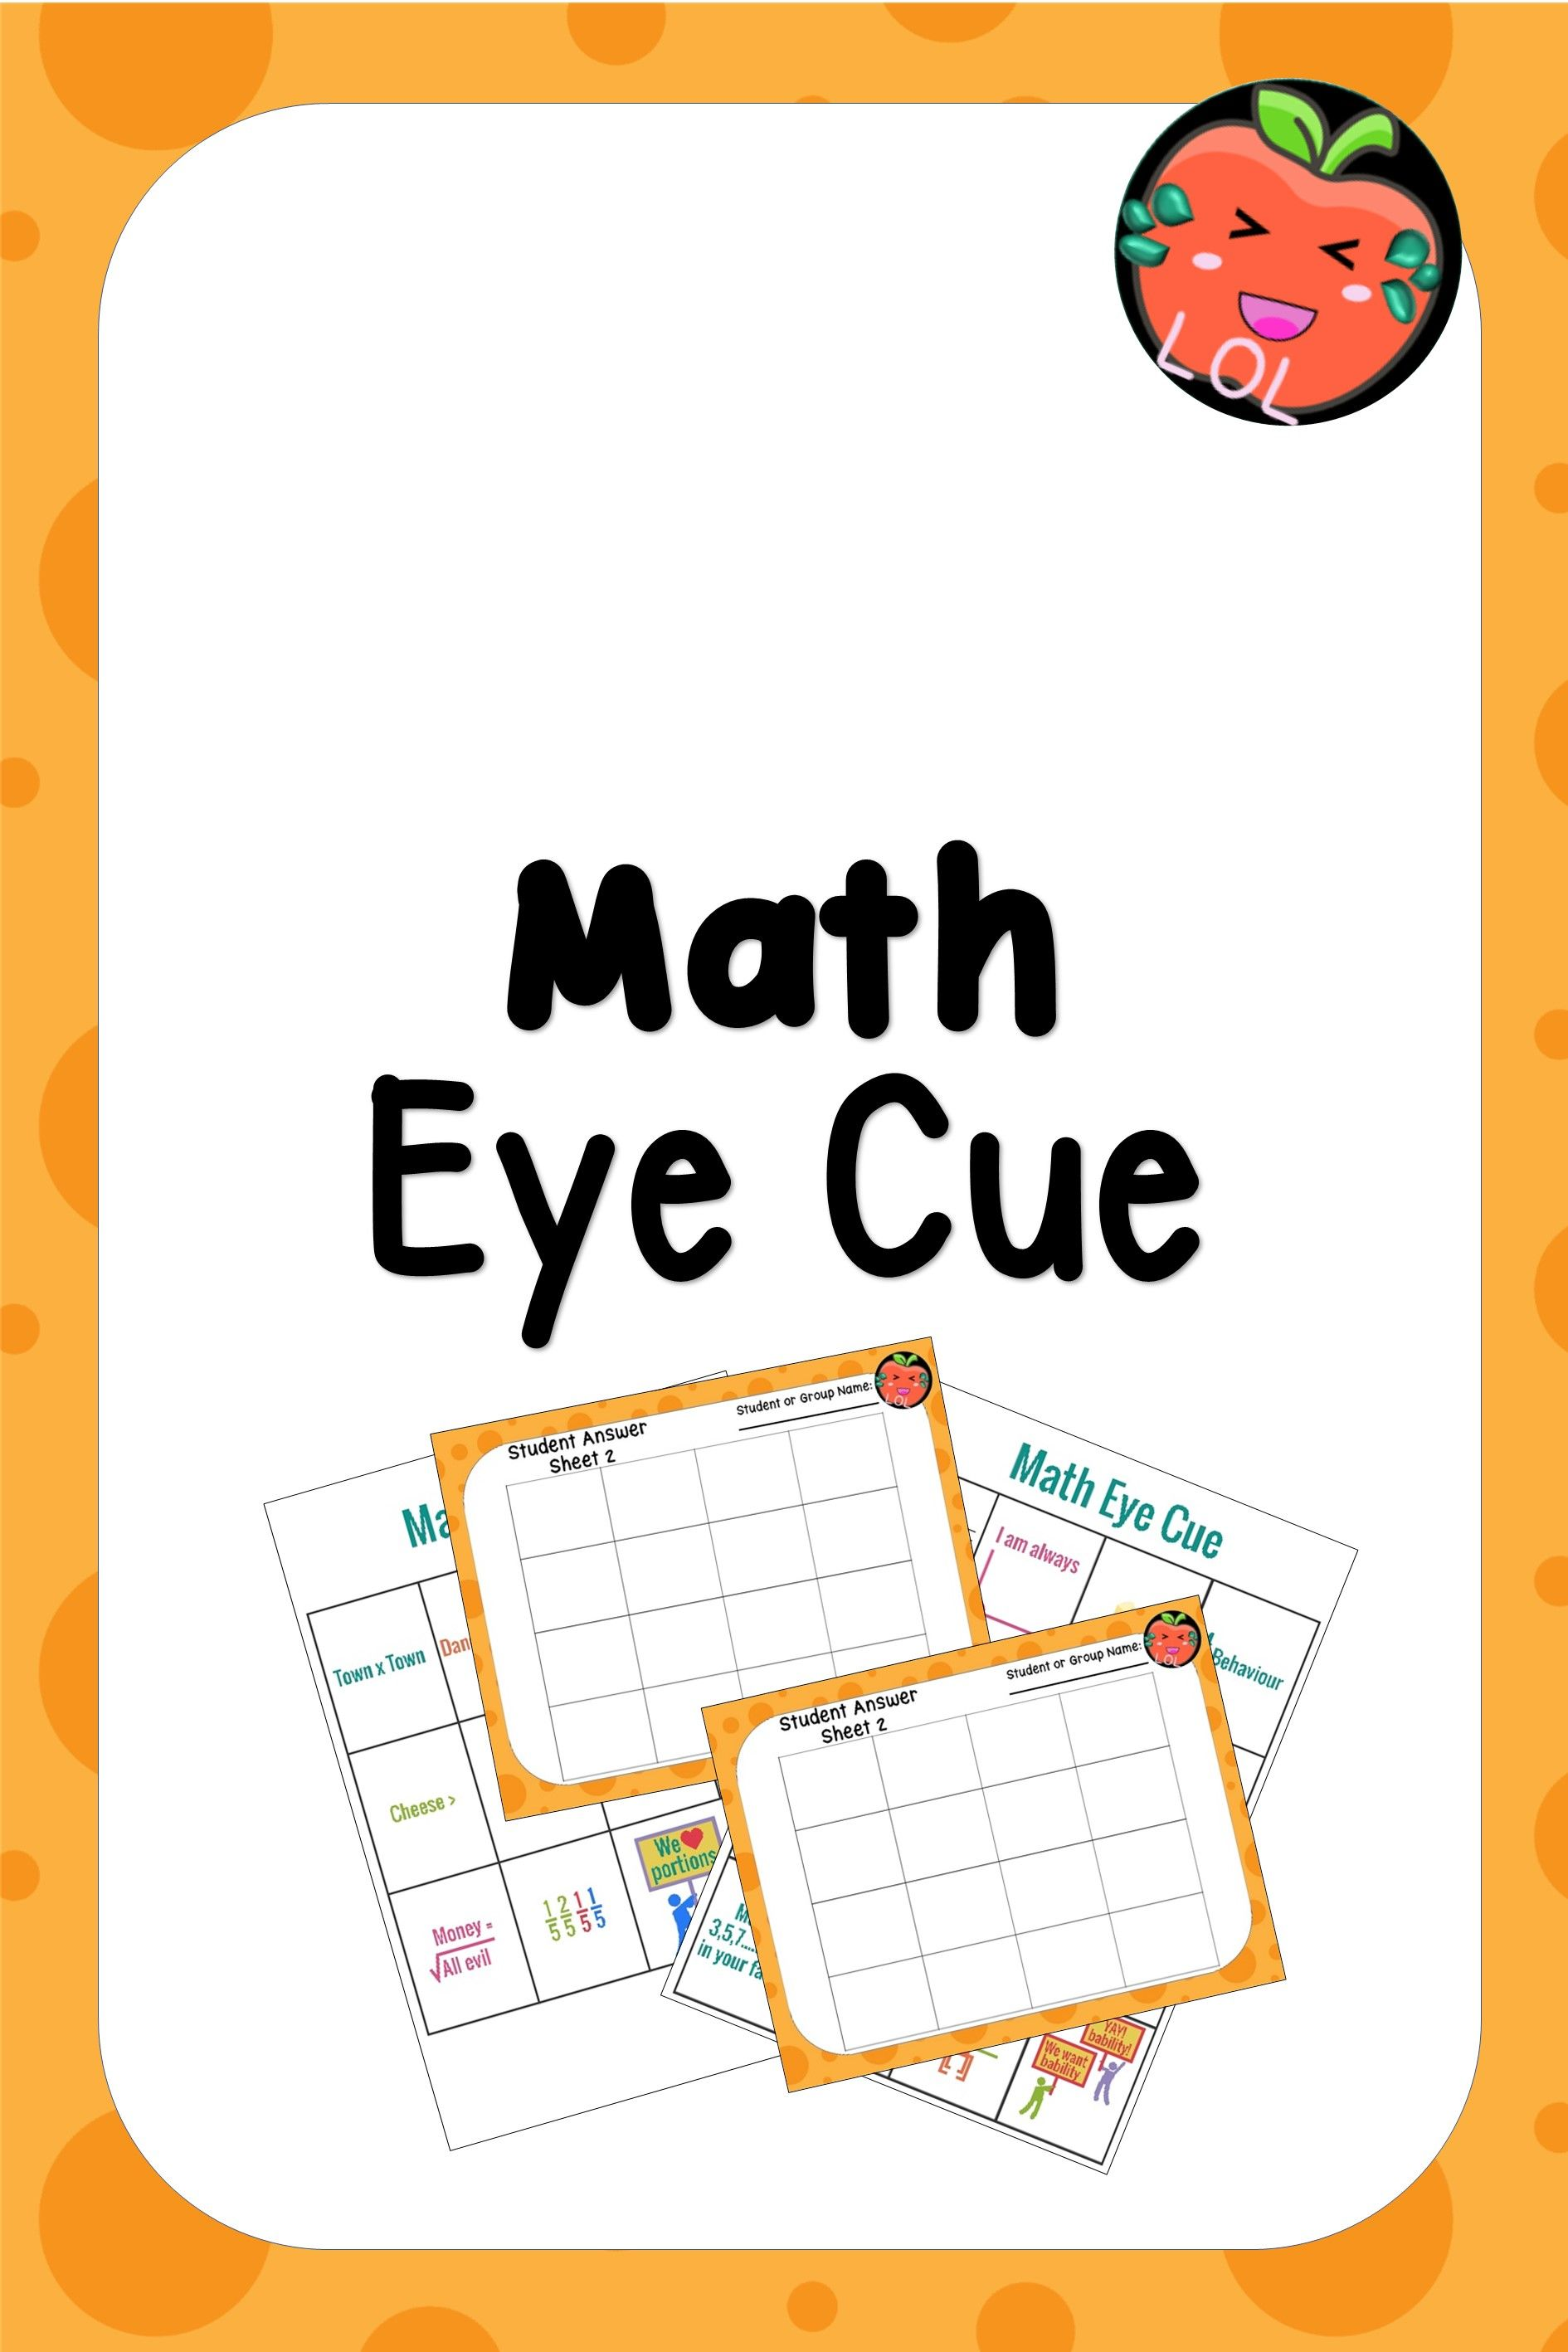 14+ Math games for middle schoolers inspiration